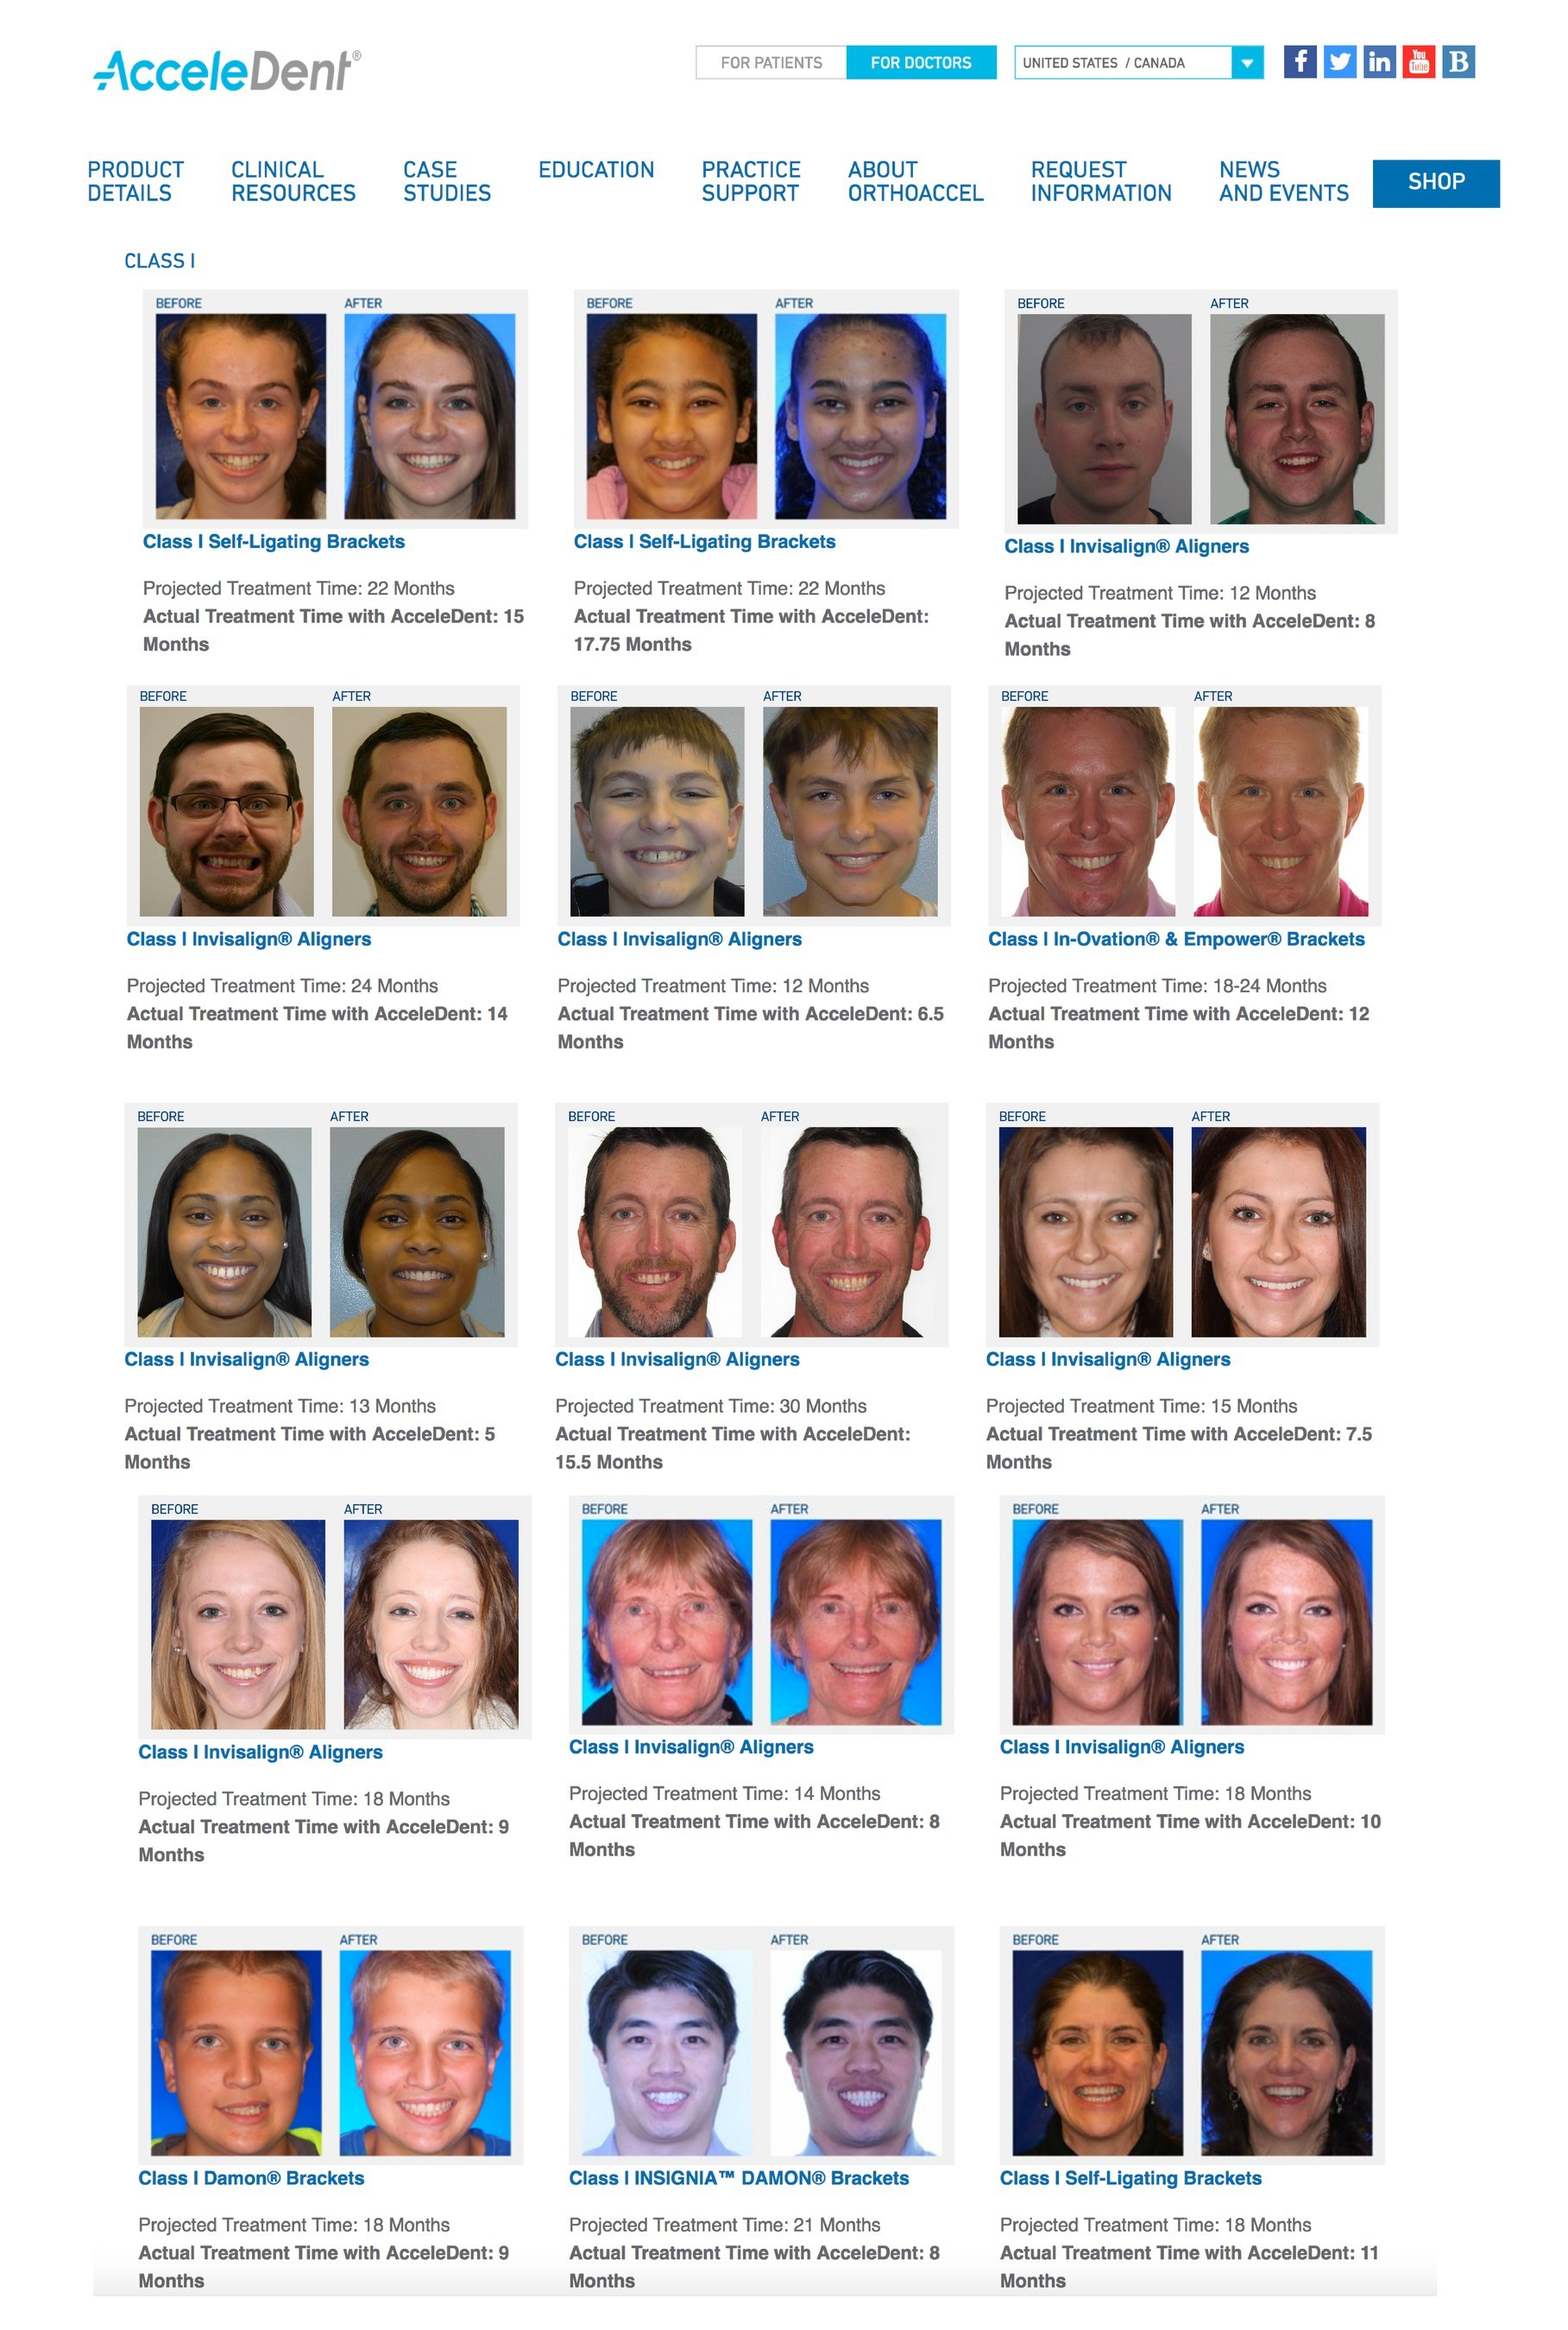 OrthoAccel's new online case gallery includes more than 40 case studies, assembled from 24 orthodontists that show how AcceleDent enabled doctors to accelerate their patients' treatment times to help achieve predictable clinical outcomes. Click here to view the case gallery: https://acceledent.com/orthodontists/case-studies/.